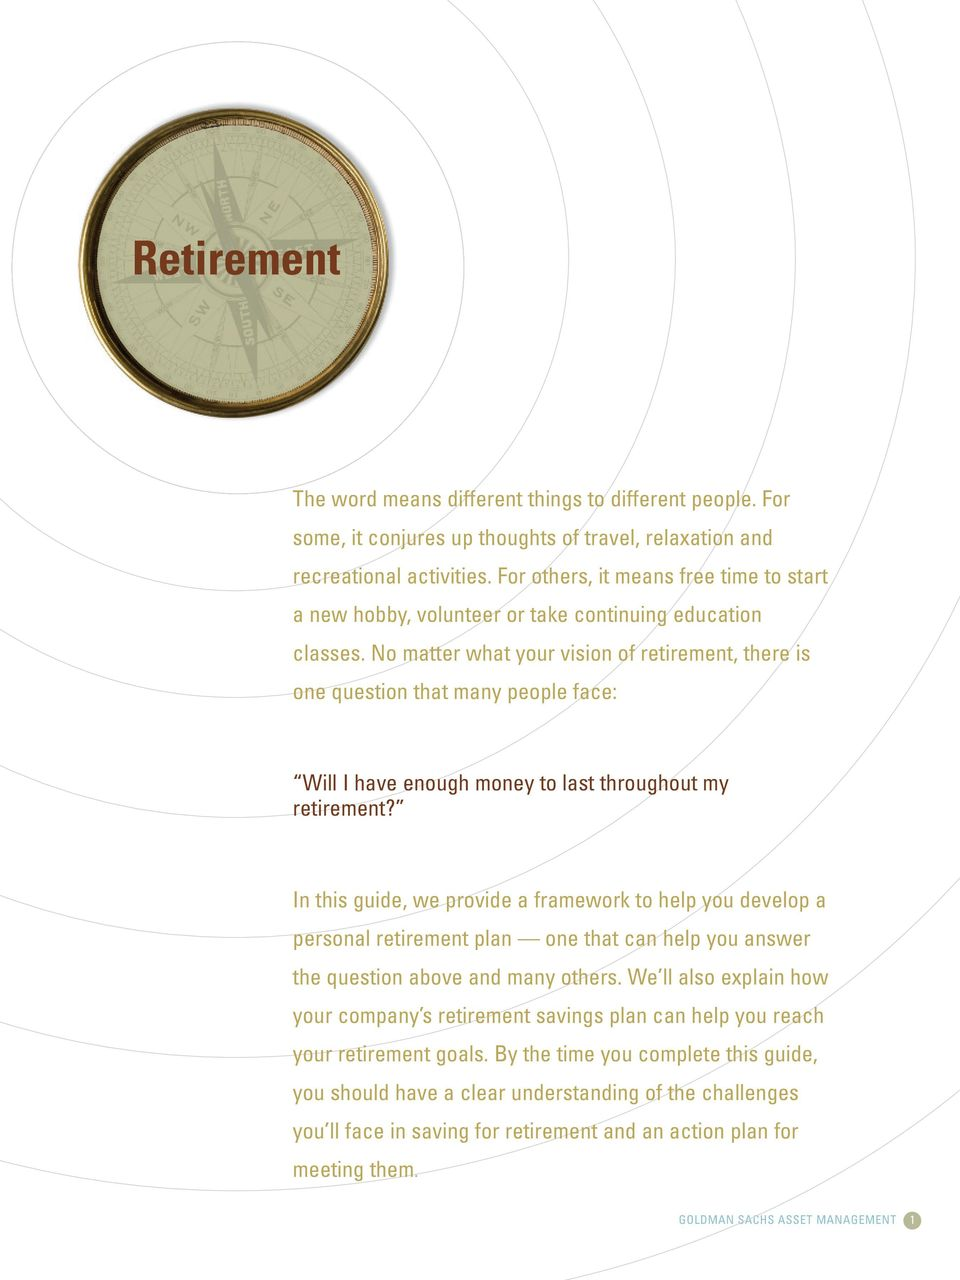 No matter what your vision of retirement, there is one question that many people face: Will I have enough money to last throughout my retirement?